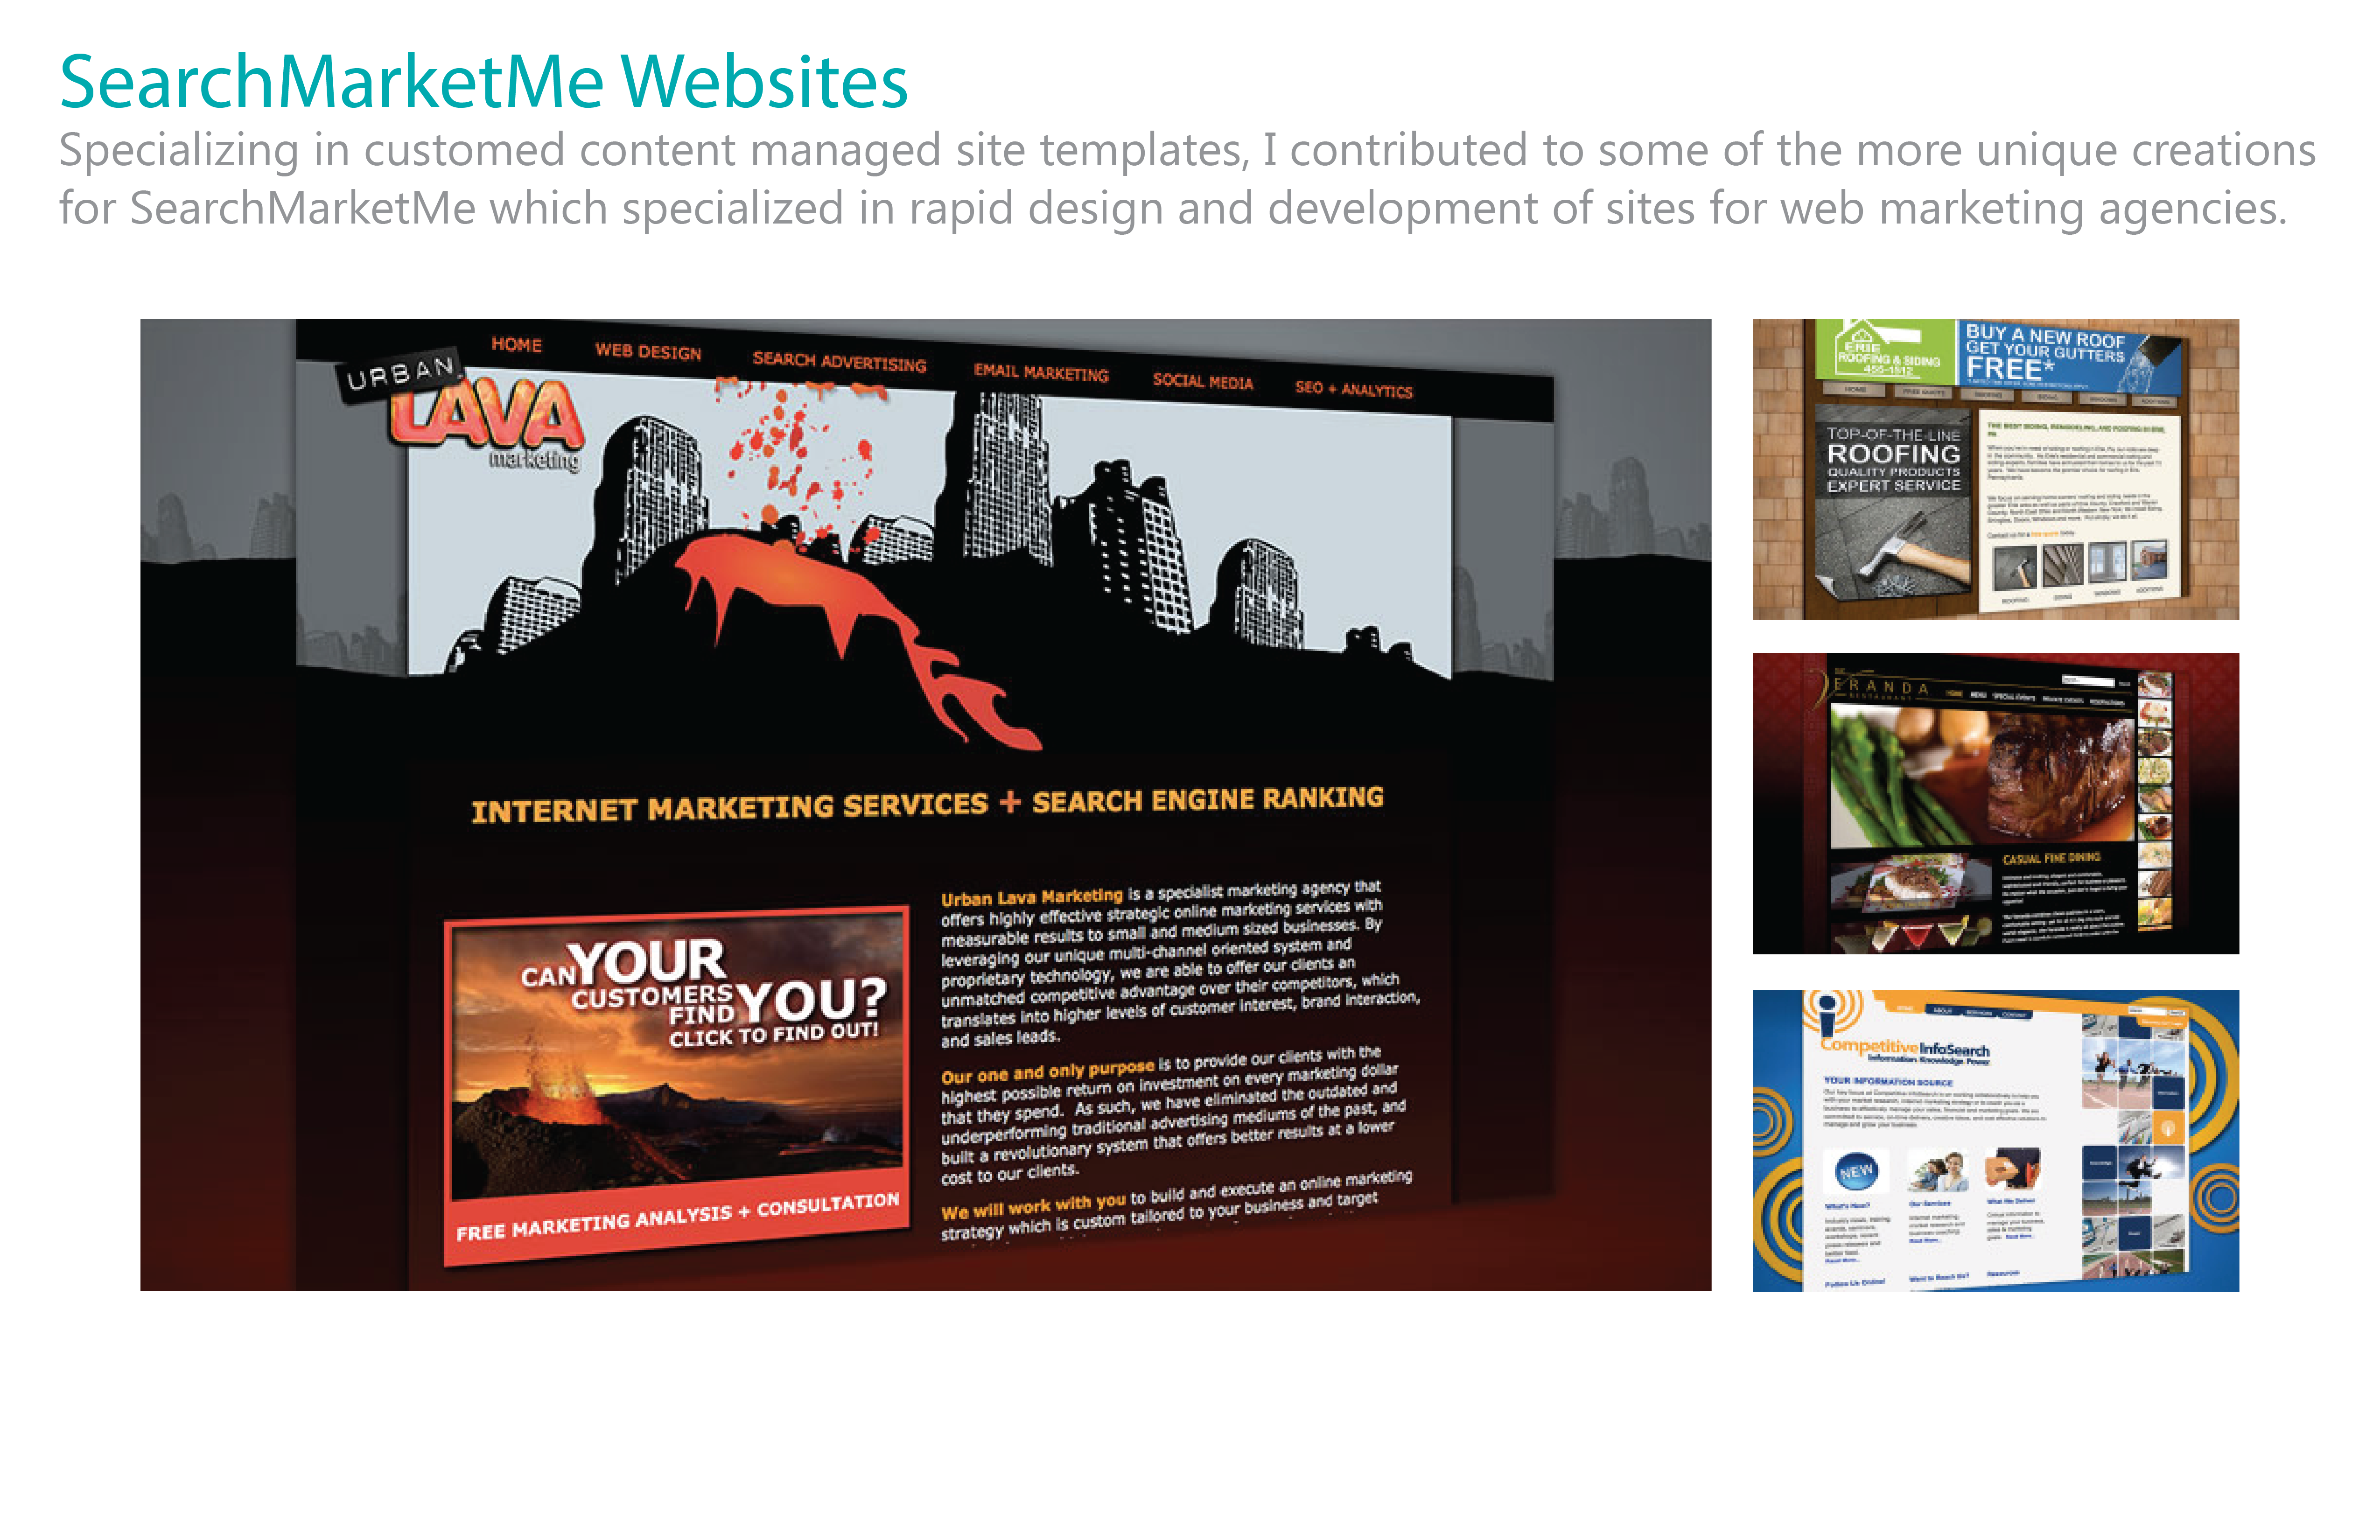 SearchMarketMe Websites